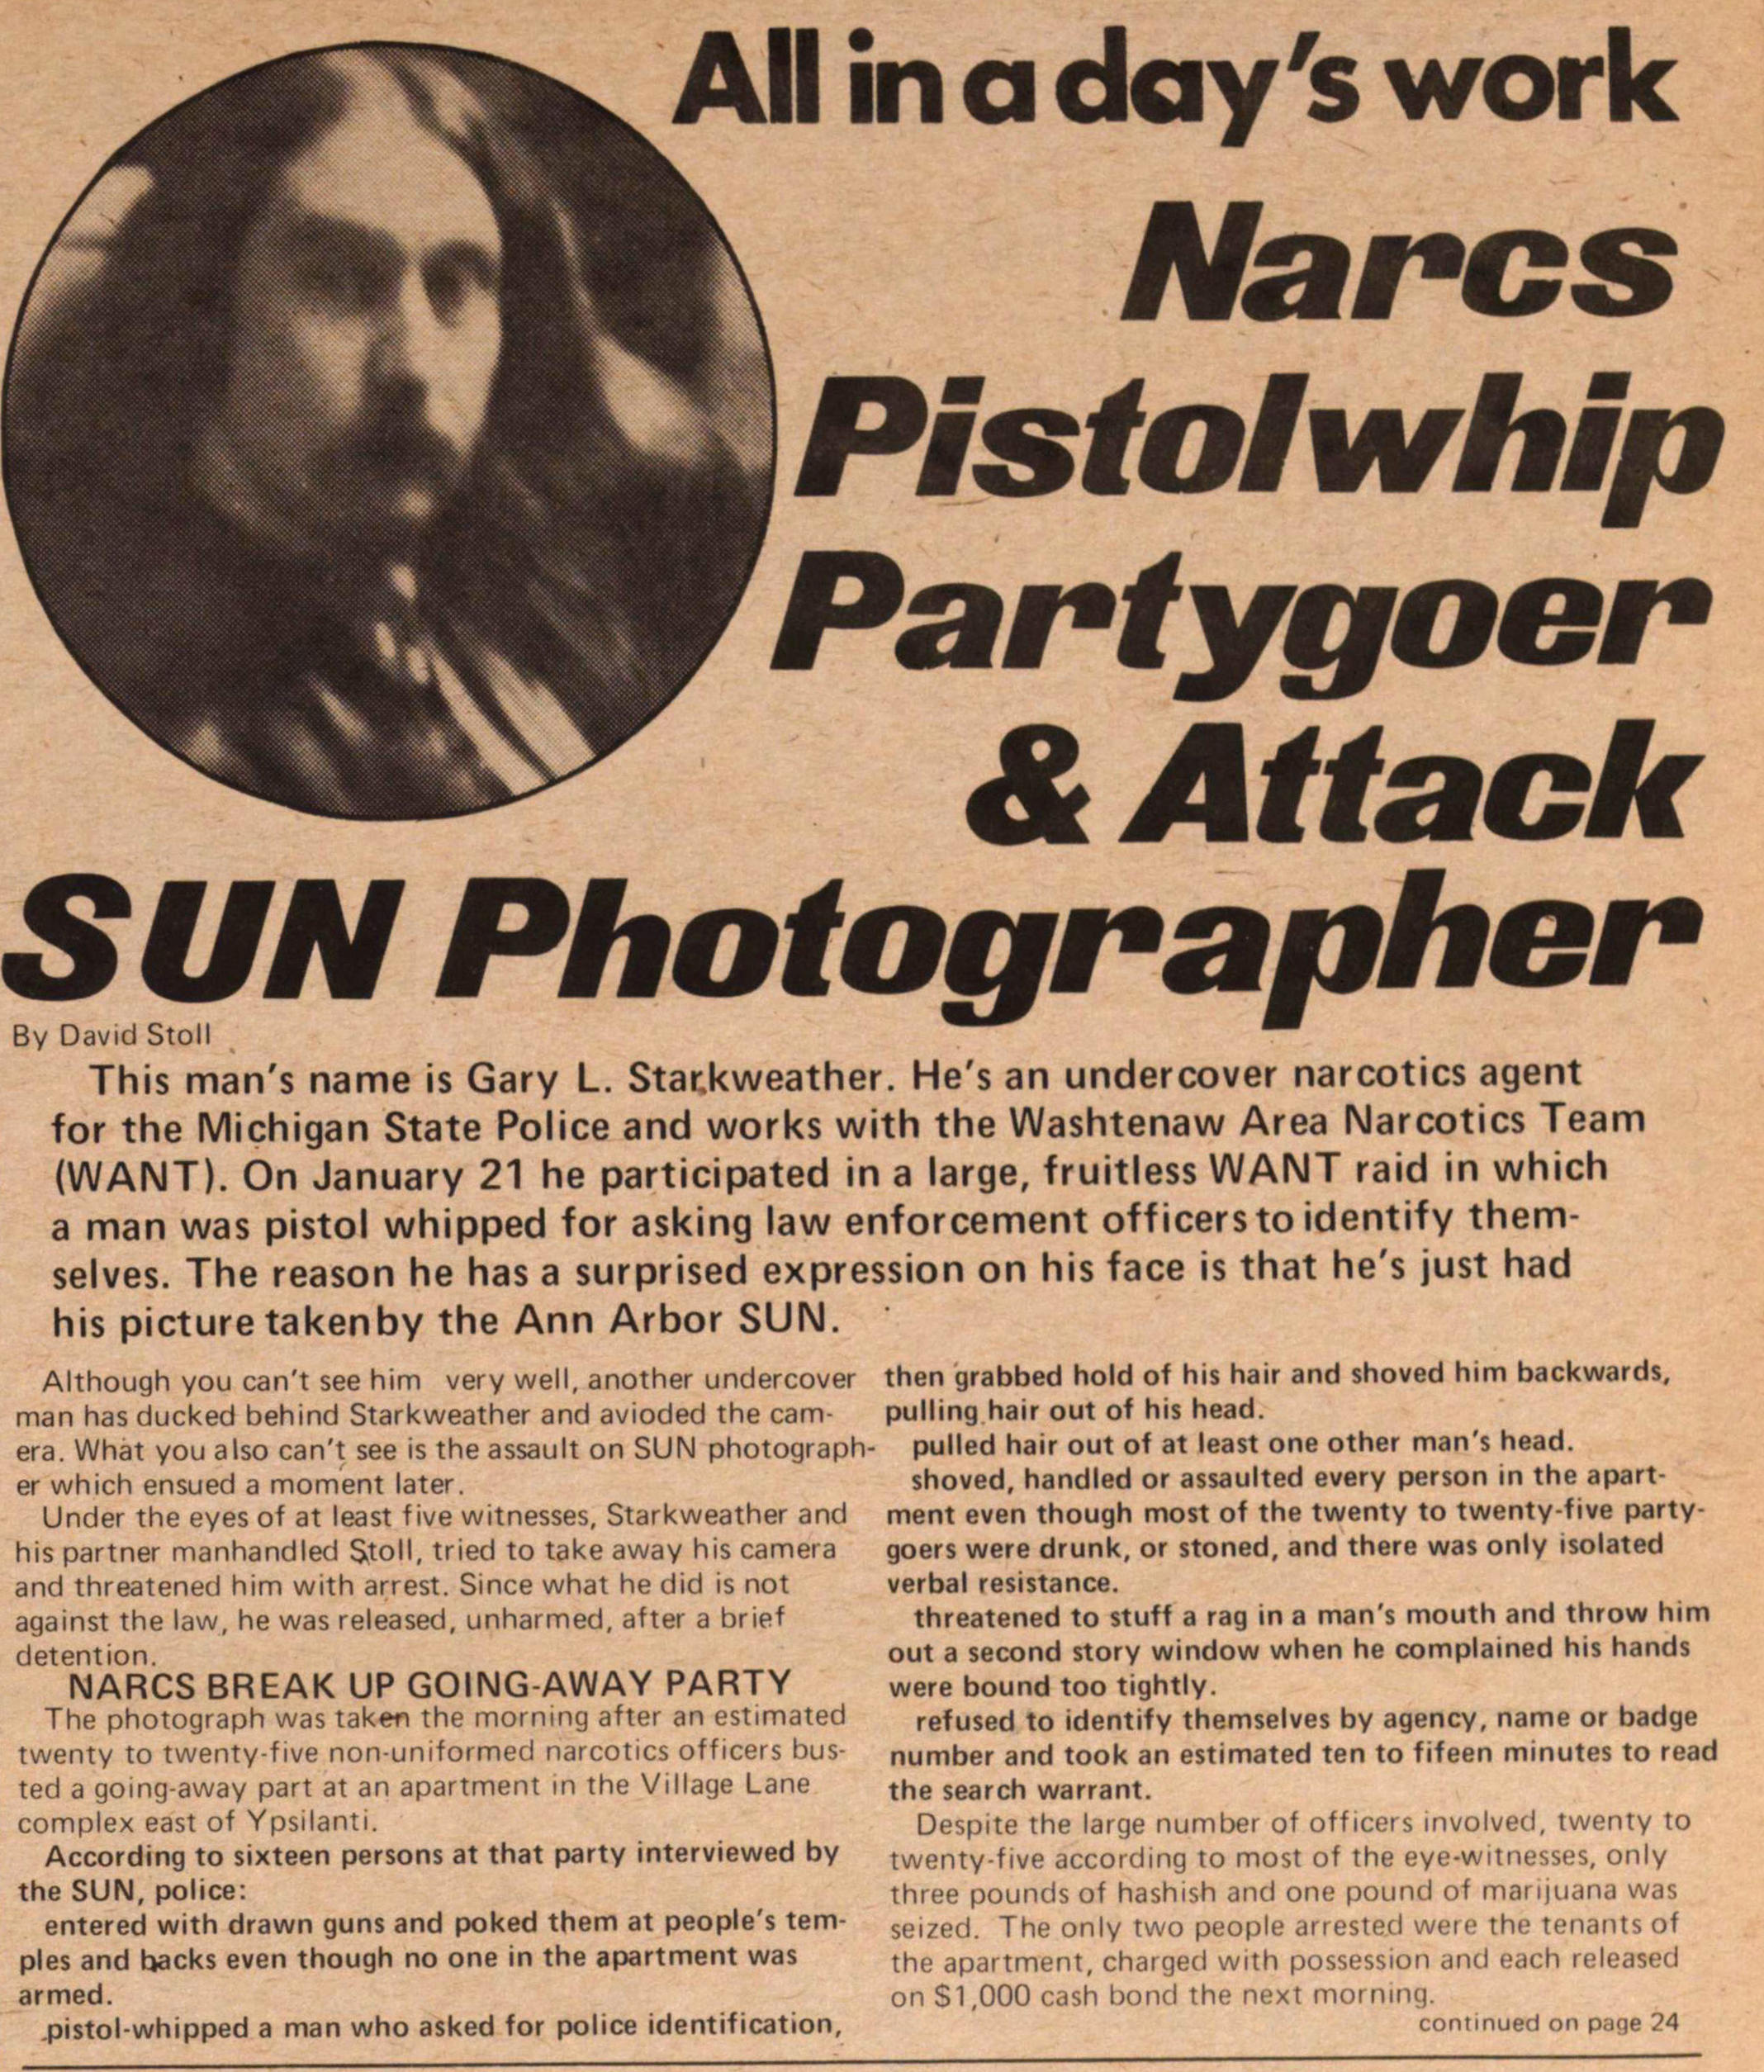 All In A Day's Work Narcs Pistolwhip Partygoer & Attack Sun Photographer image